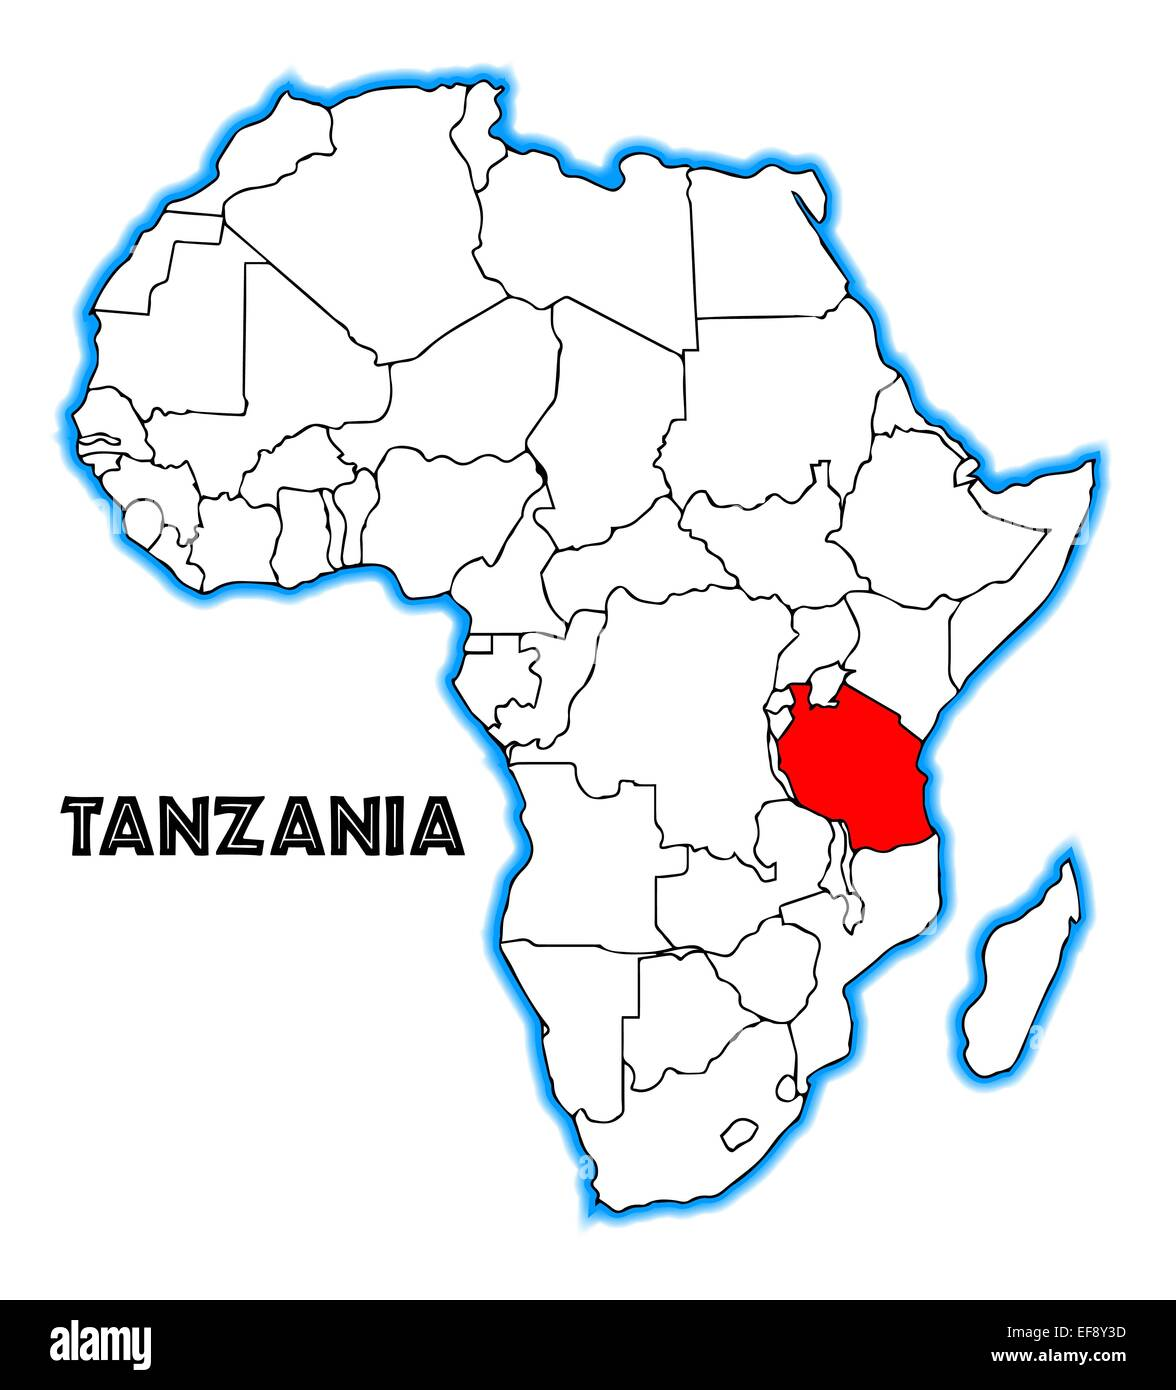 Tanzania On Map Of Africa Tanzania outline inset into a map of Africa over a white